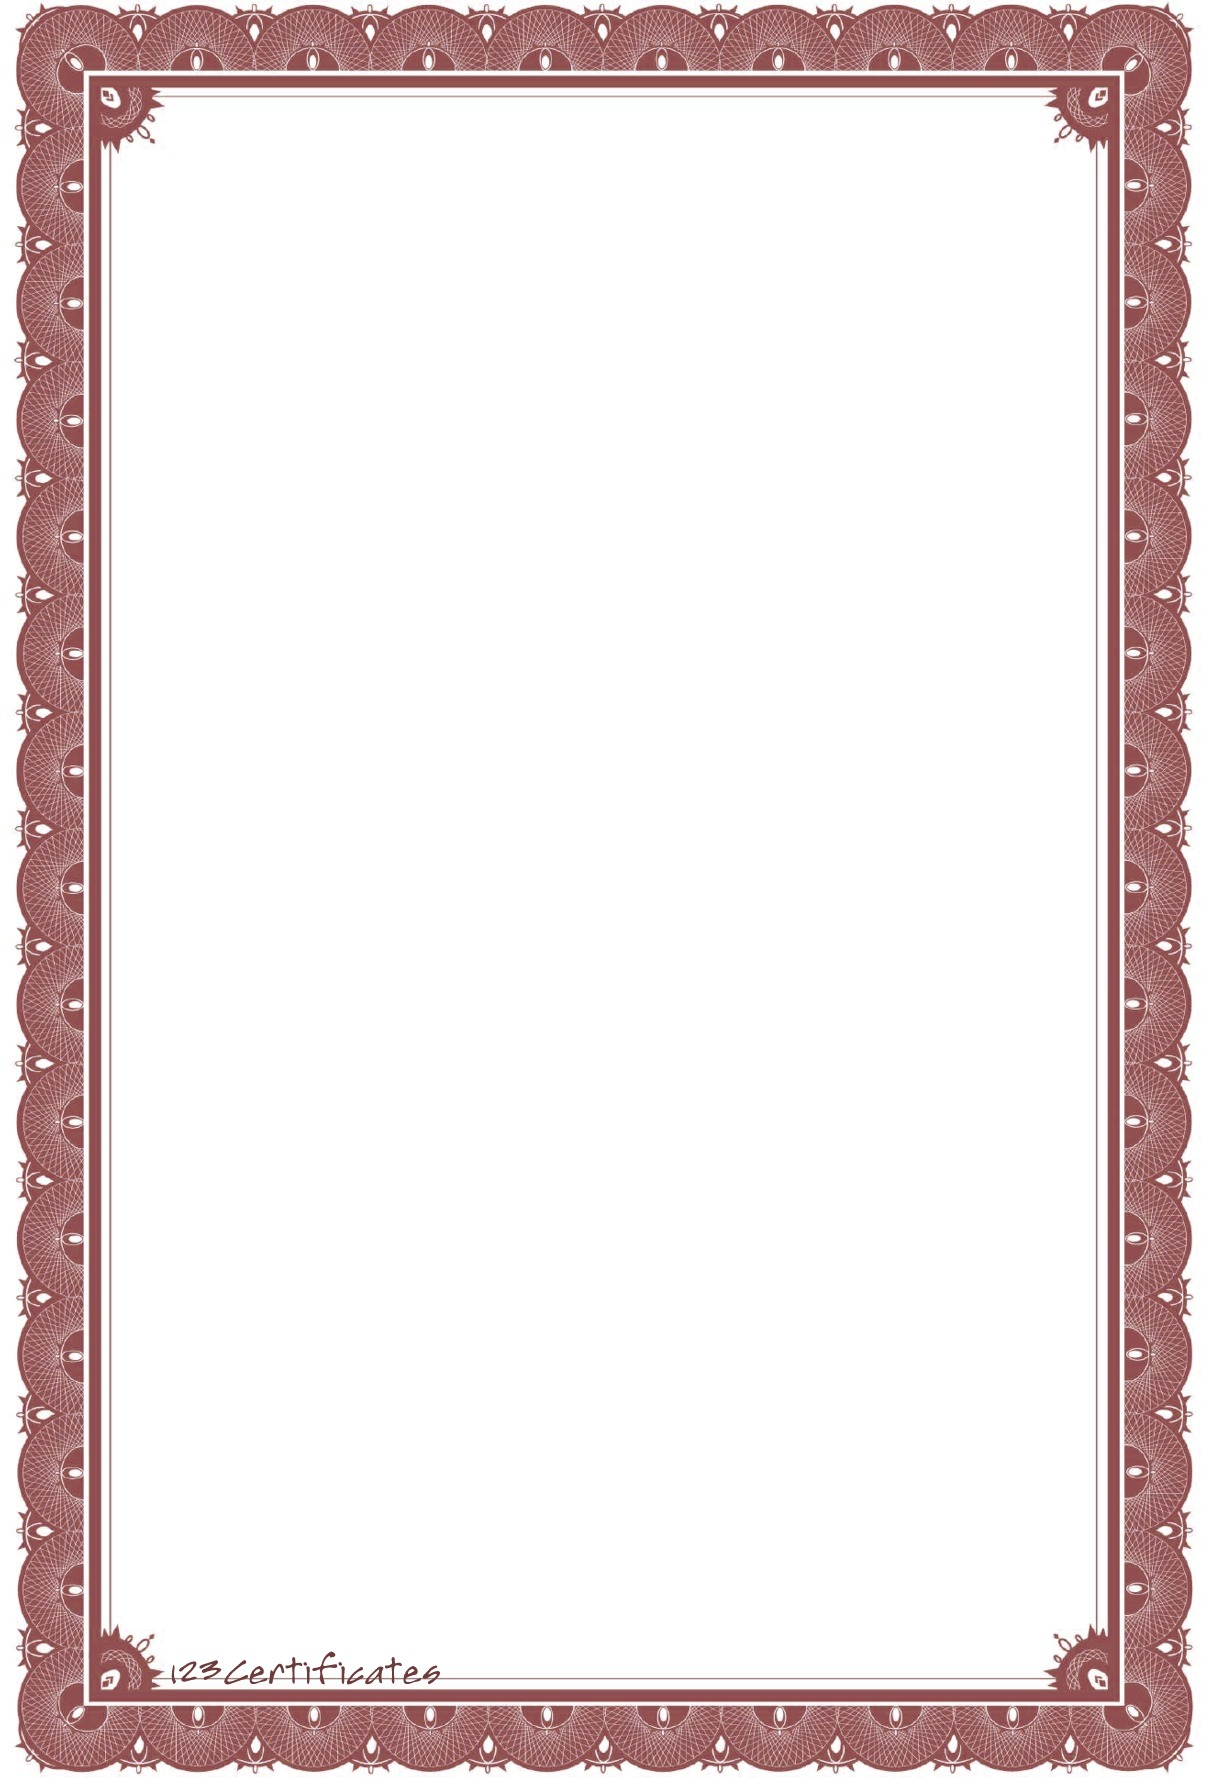 Free borders to download png library stock Free certificate borders to download, certificate templates for ... png library stock